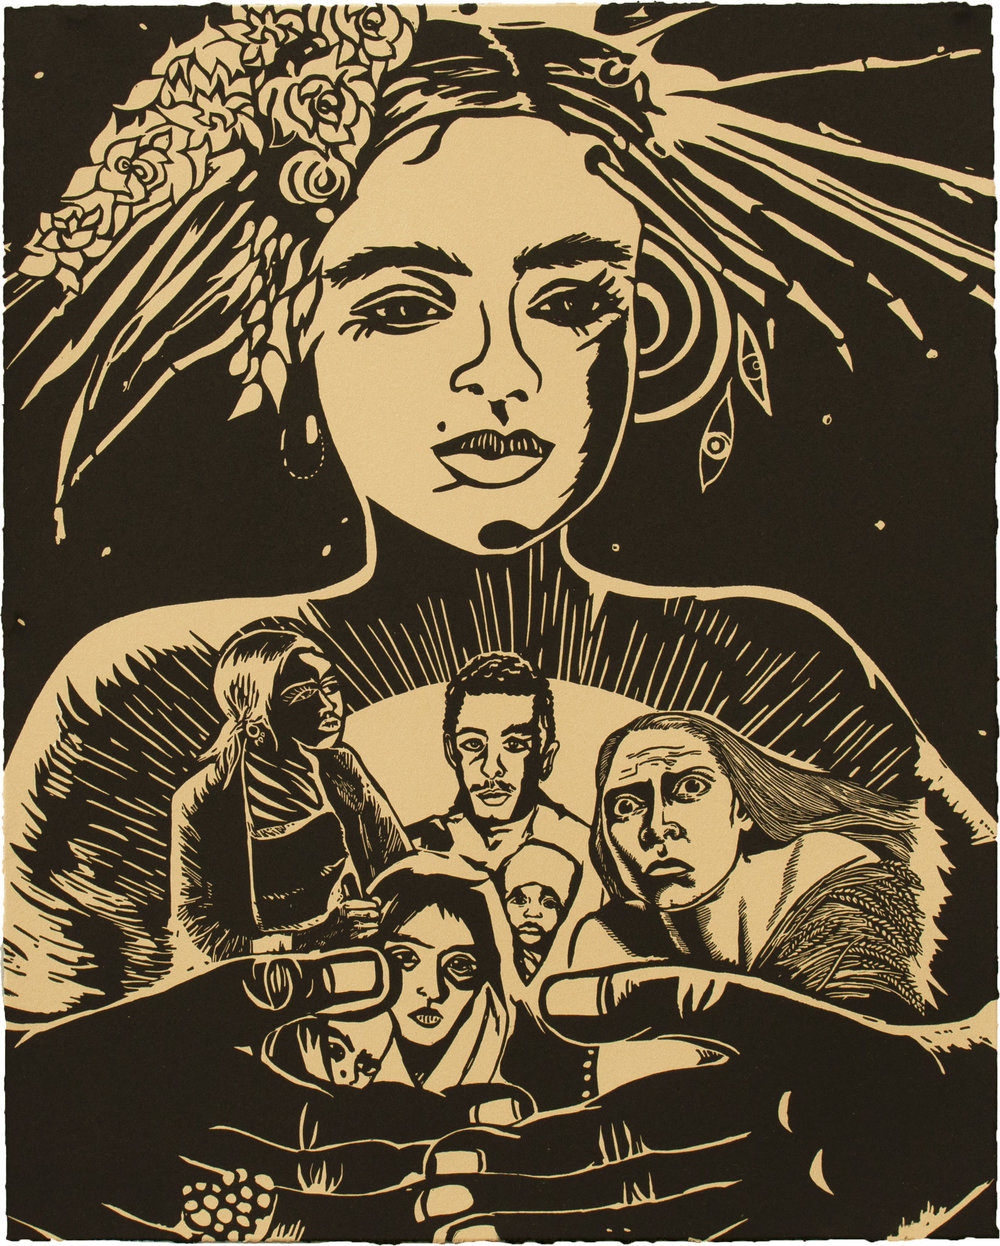 Chitra Ganesh,  Refugees and Queen , 2018, Linocut BFK Rives Tan, 280gsm, Edition of 35, 20 1/ 8 x 16 1/8 inches (51.1 x 41 cm)